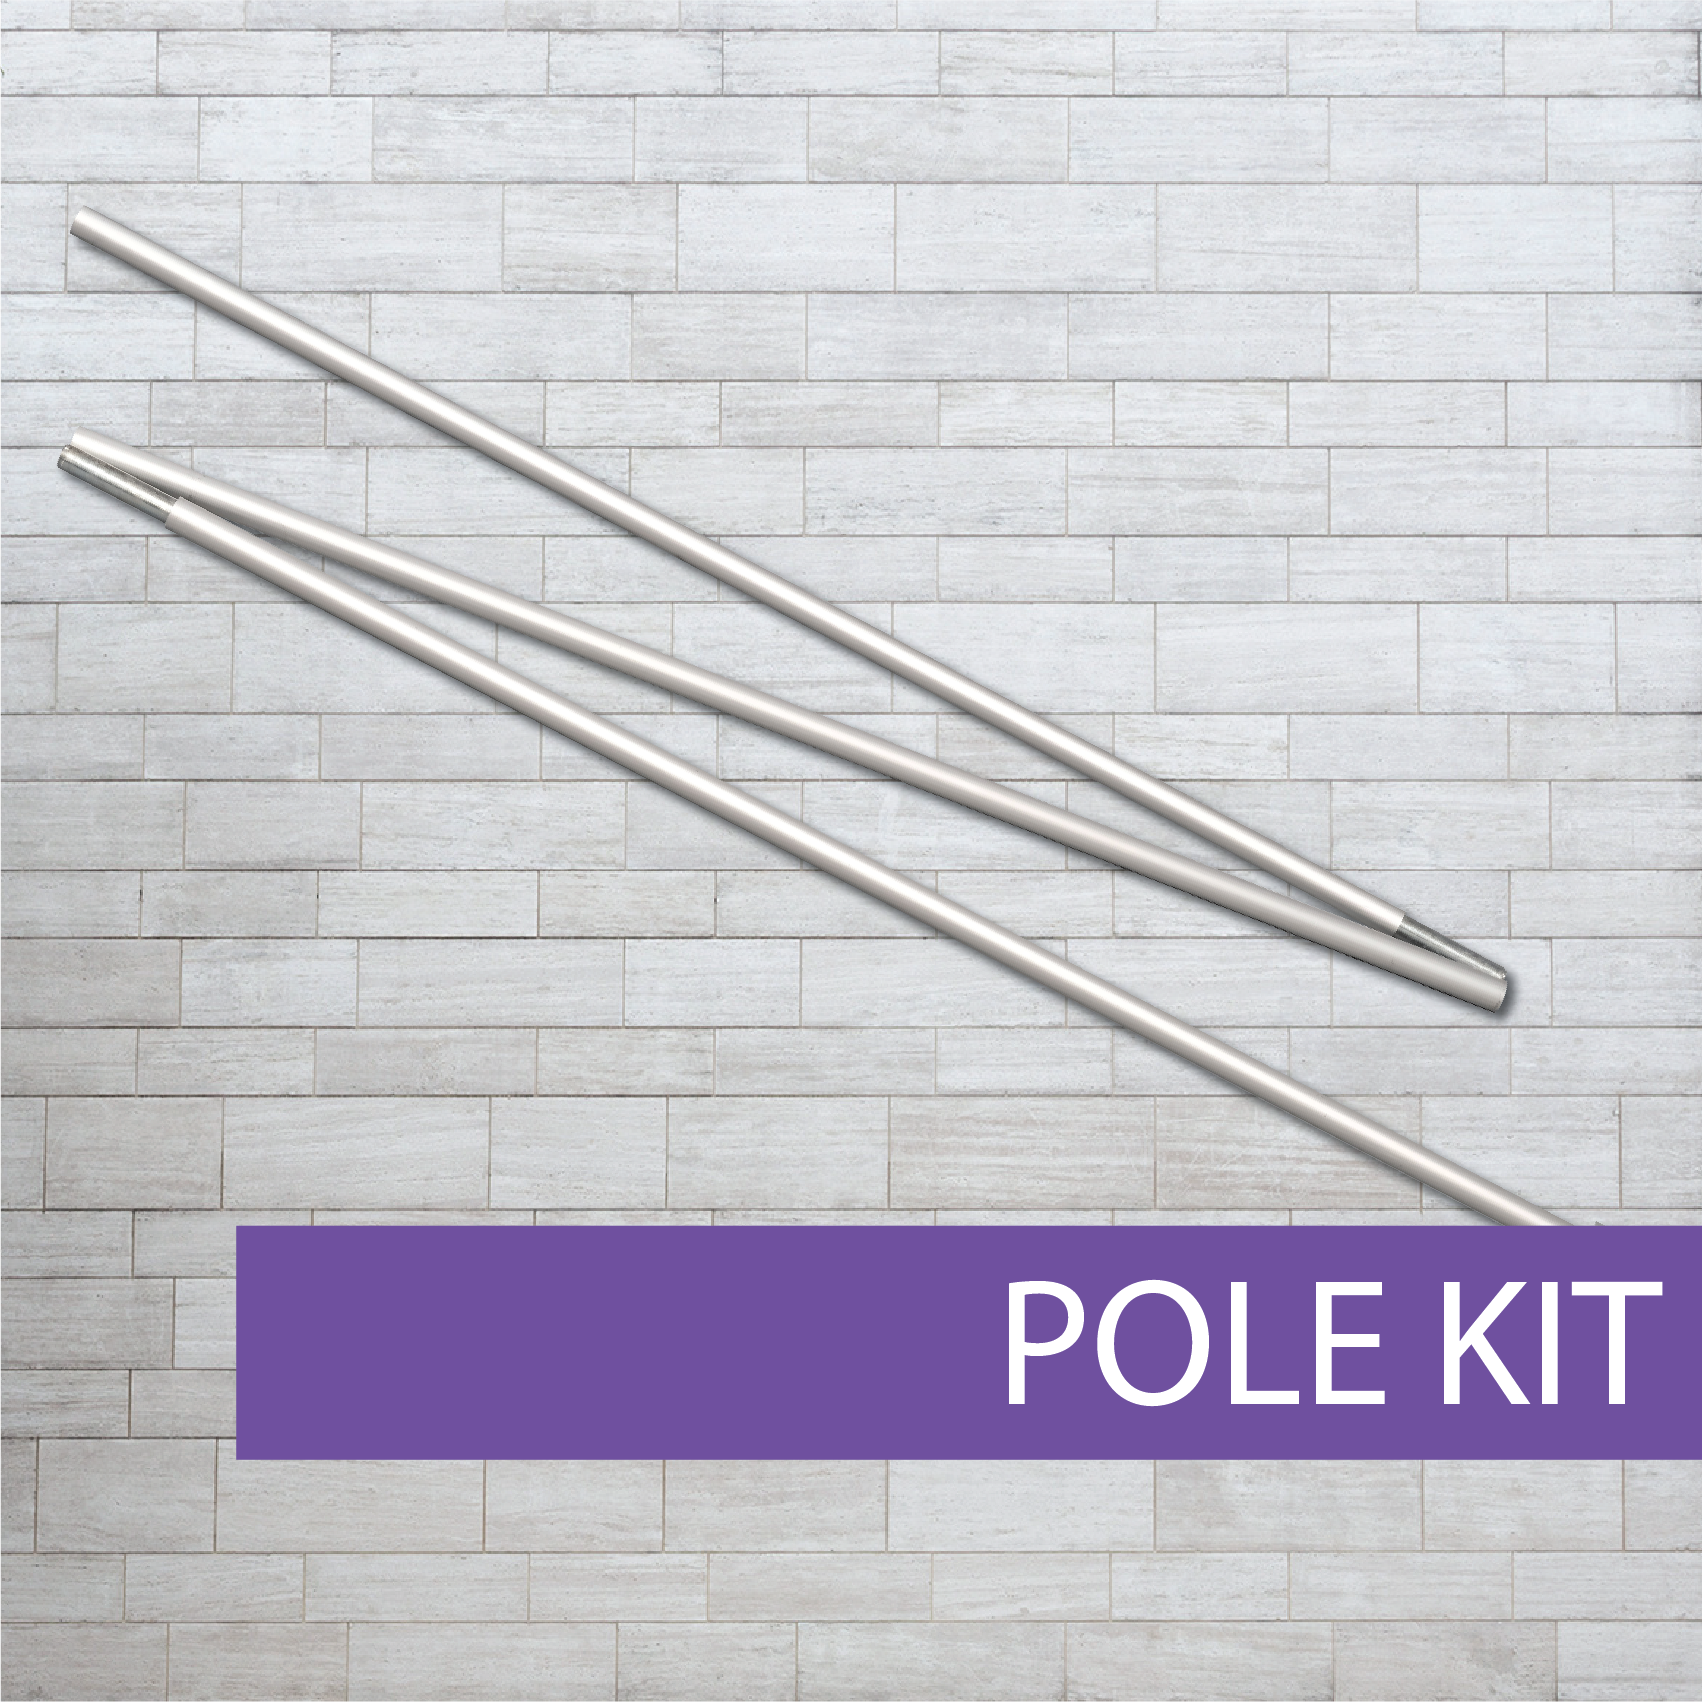 Gold Class roll-up banner pole kit